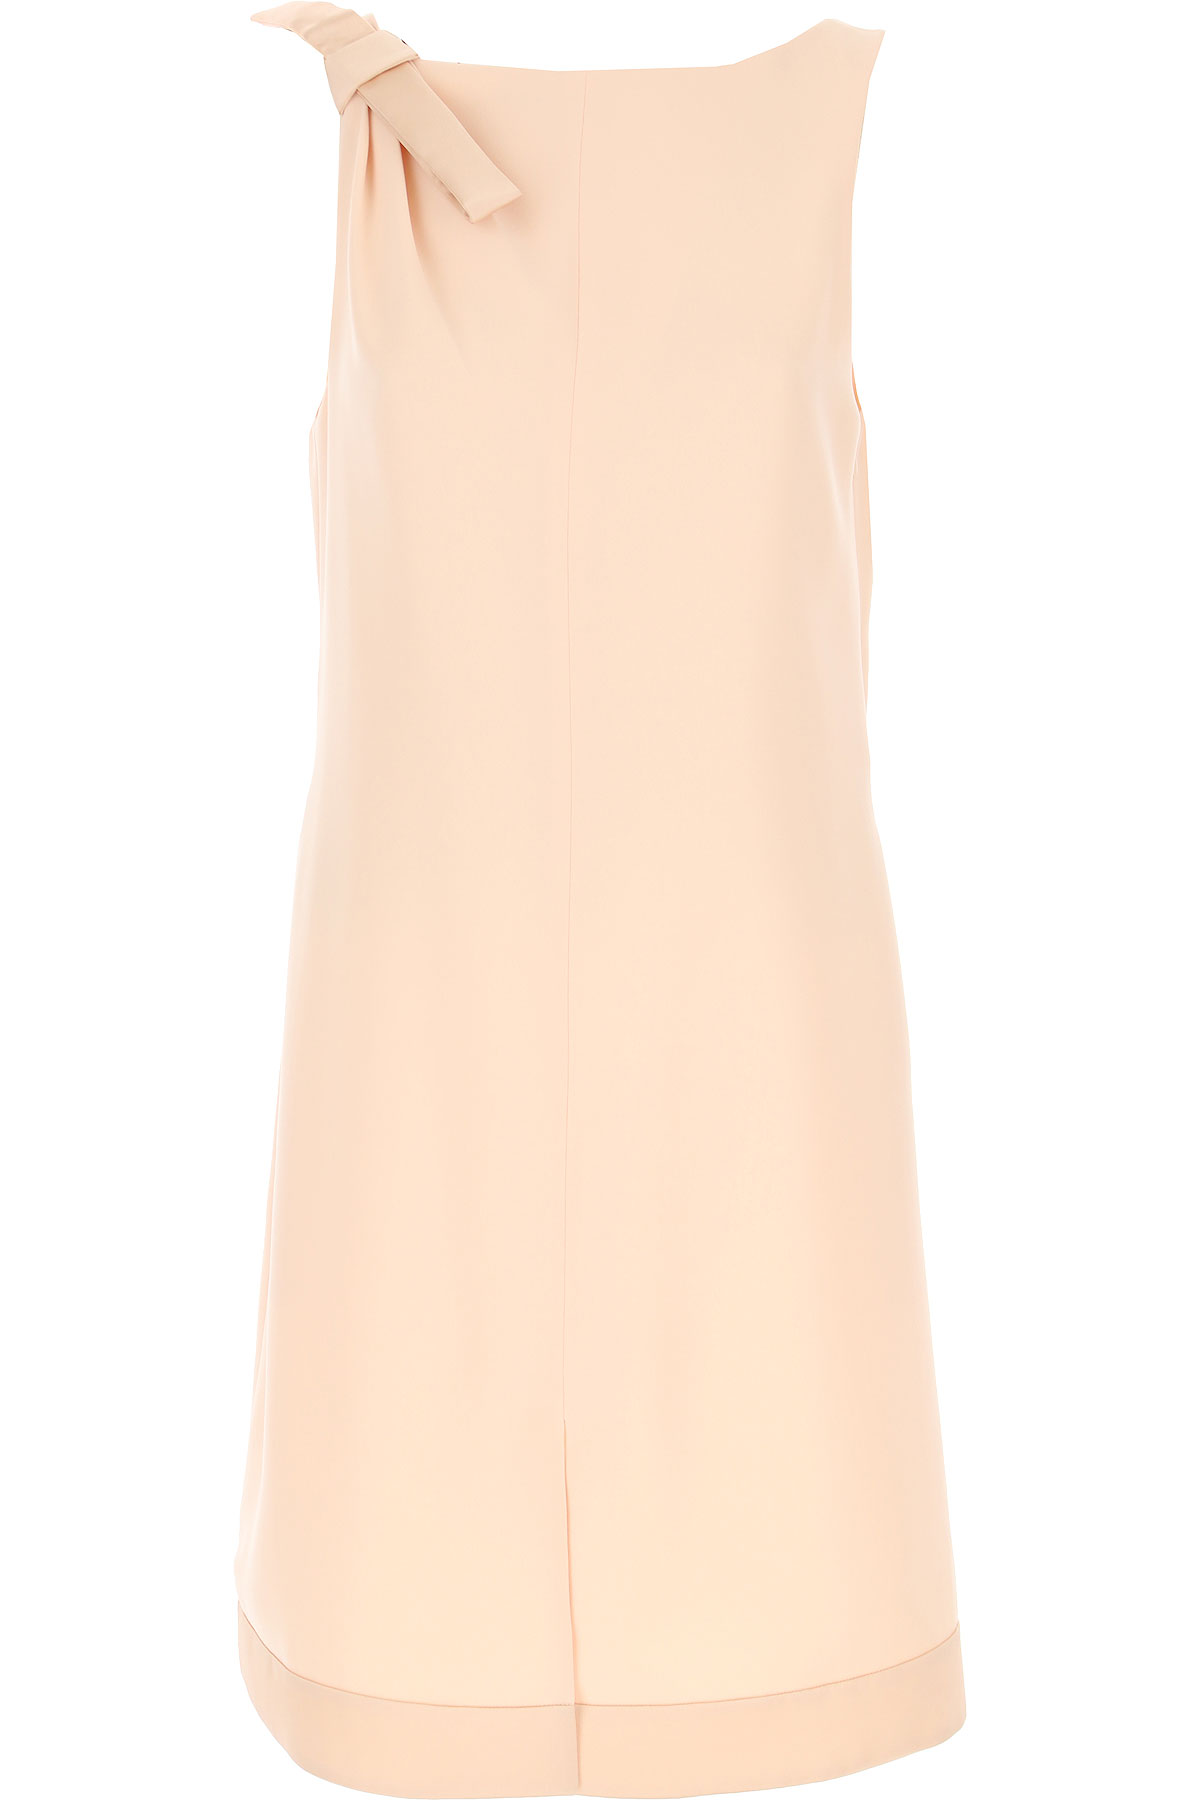 Joseph Ribkoff Dress for Women, Evening Cocktail Party On Sale, Nude, polyester, 2019, 4 6